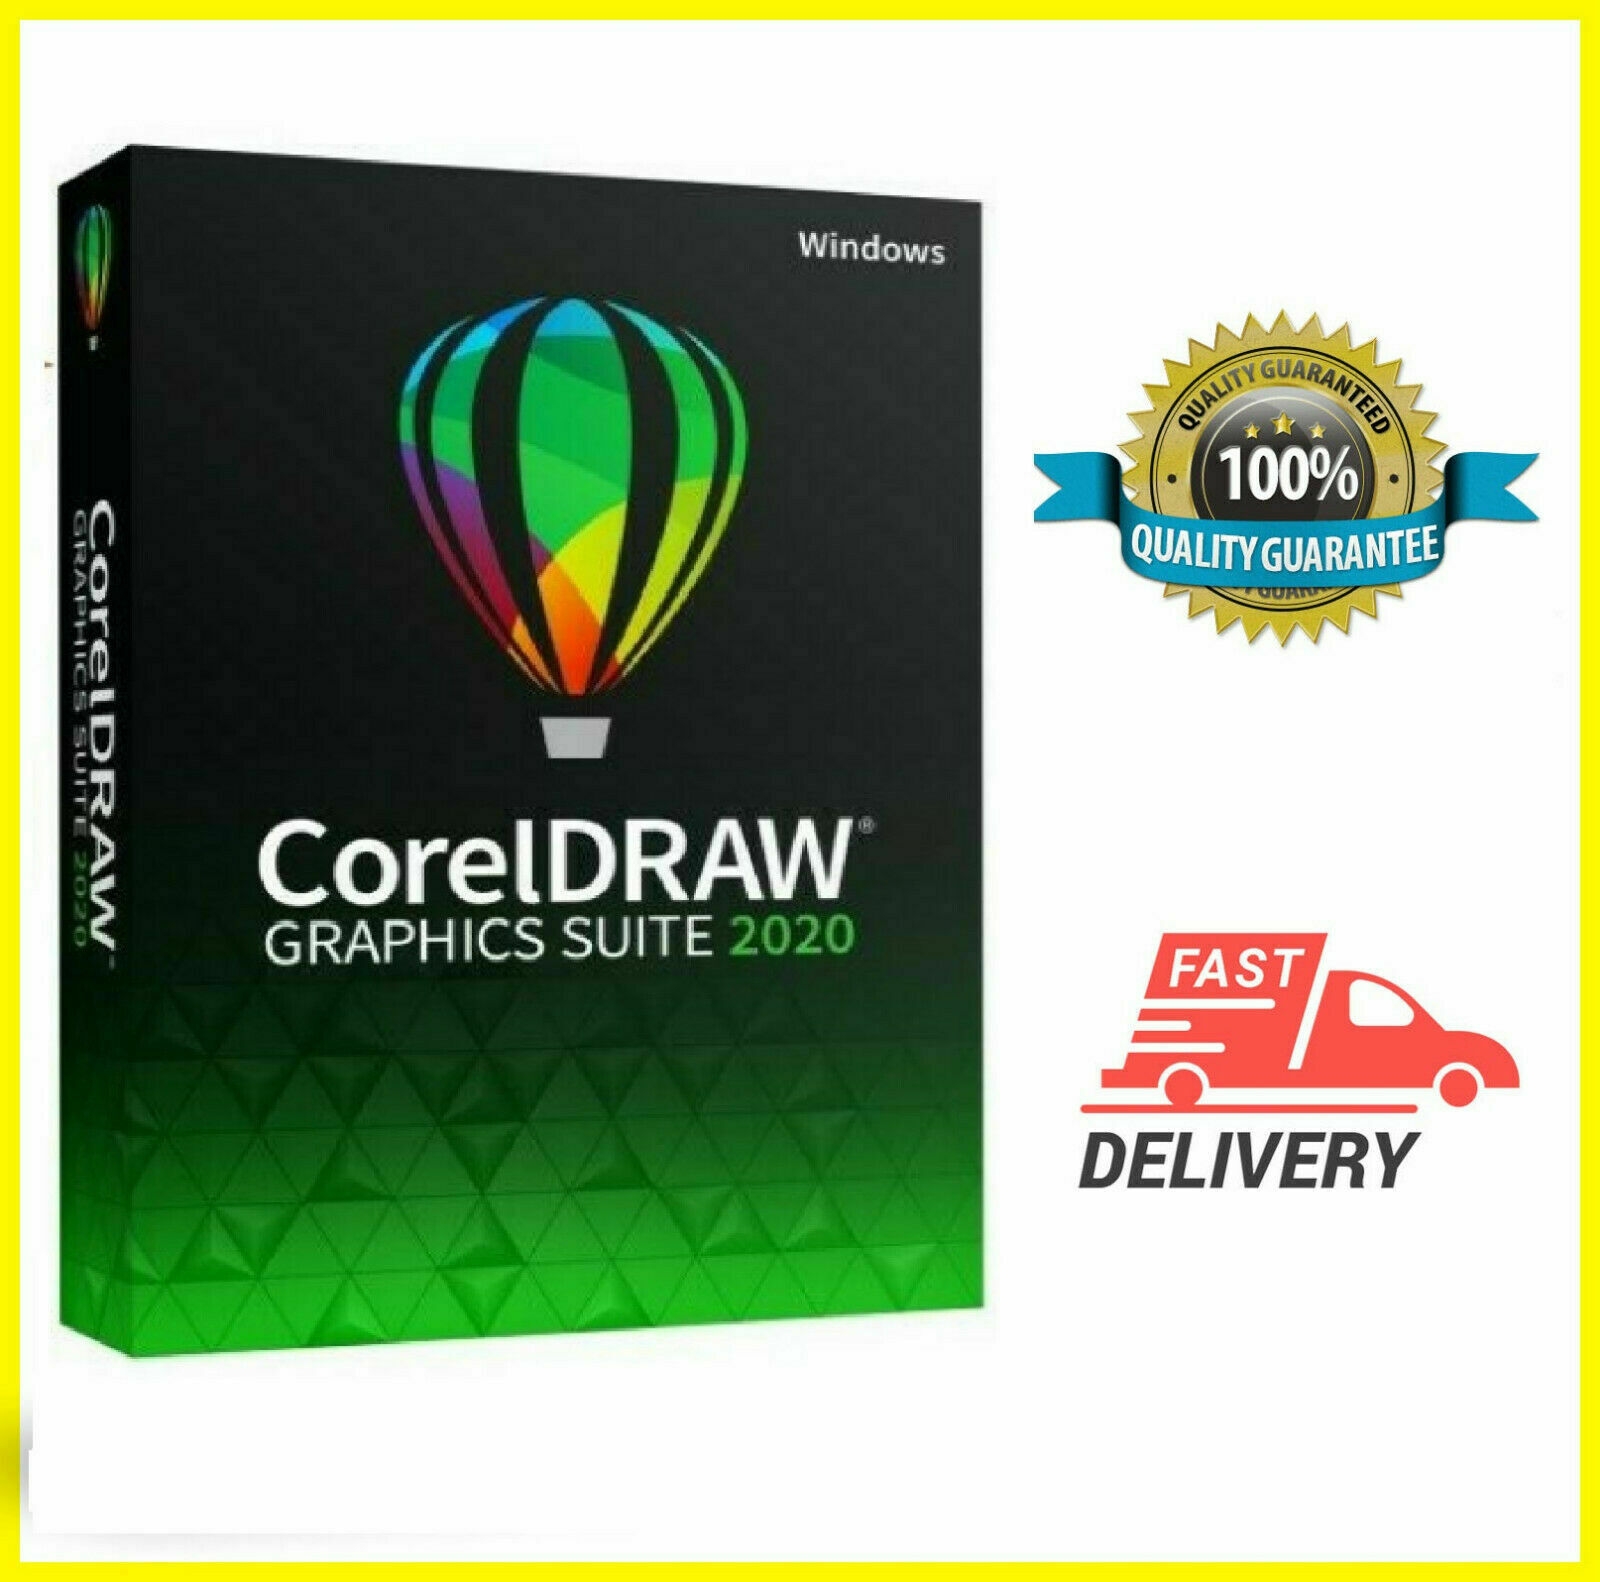 Corel draw graphics suite 2020  Full Version Fast Delivery Multilingual 4